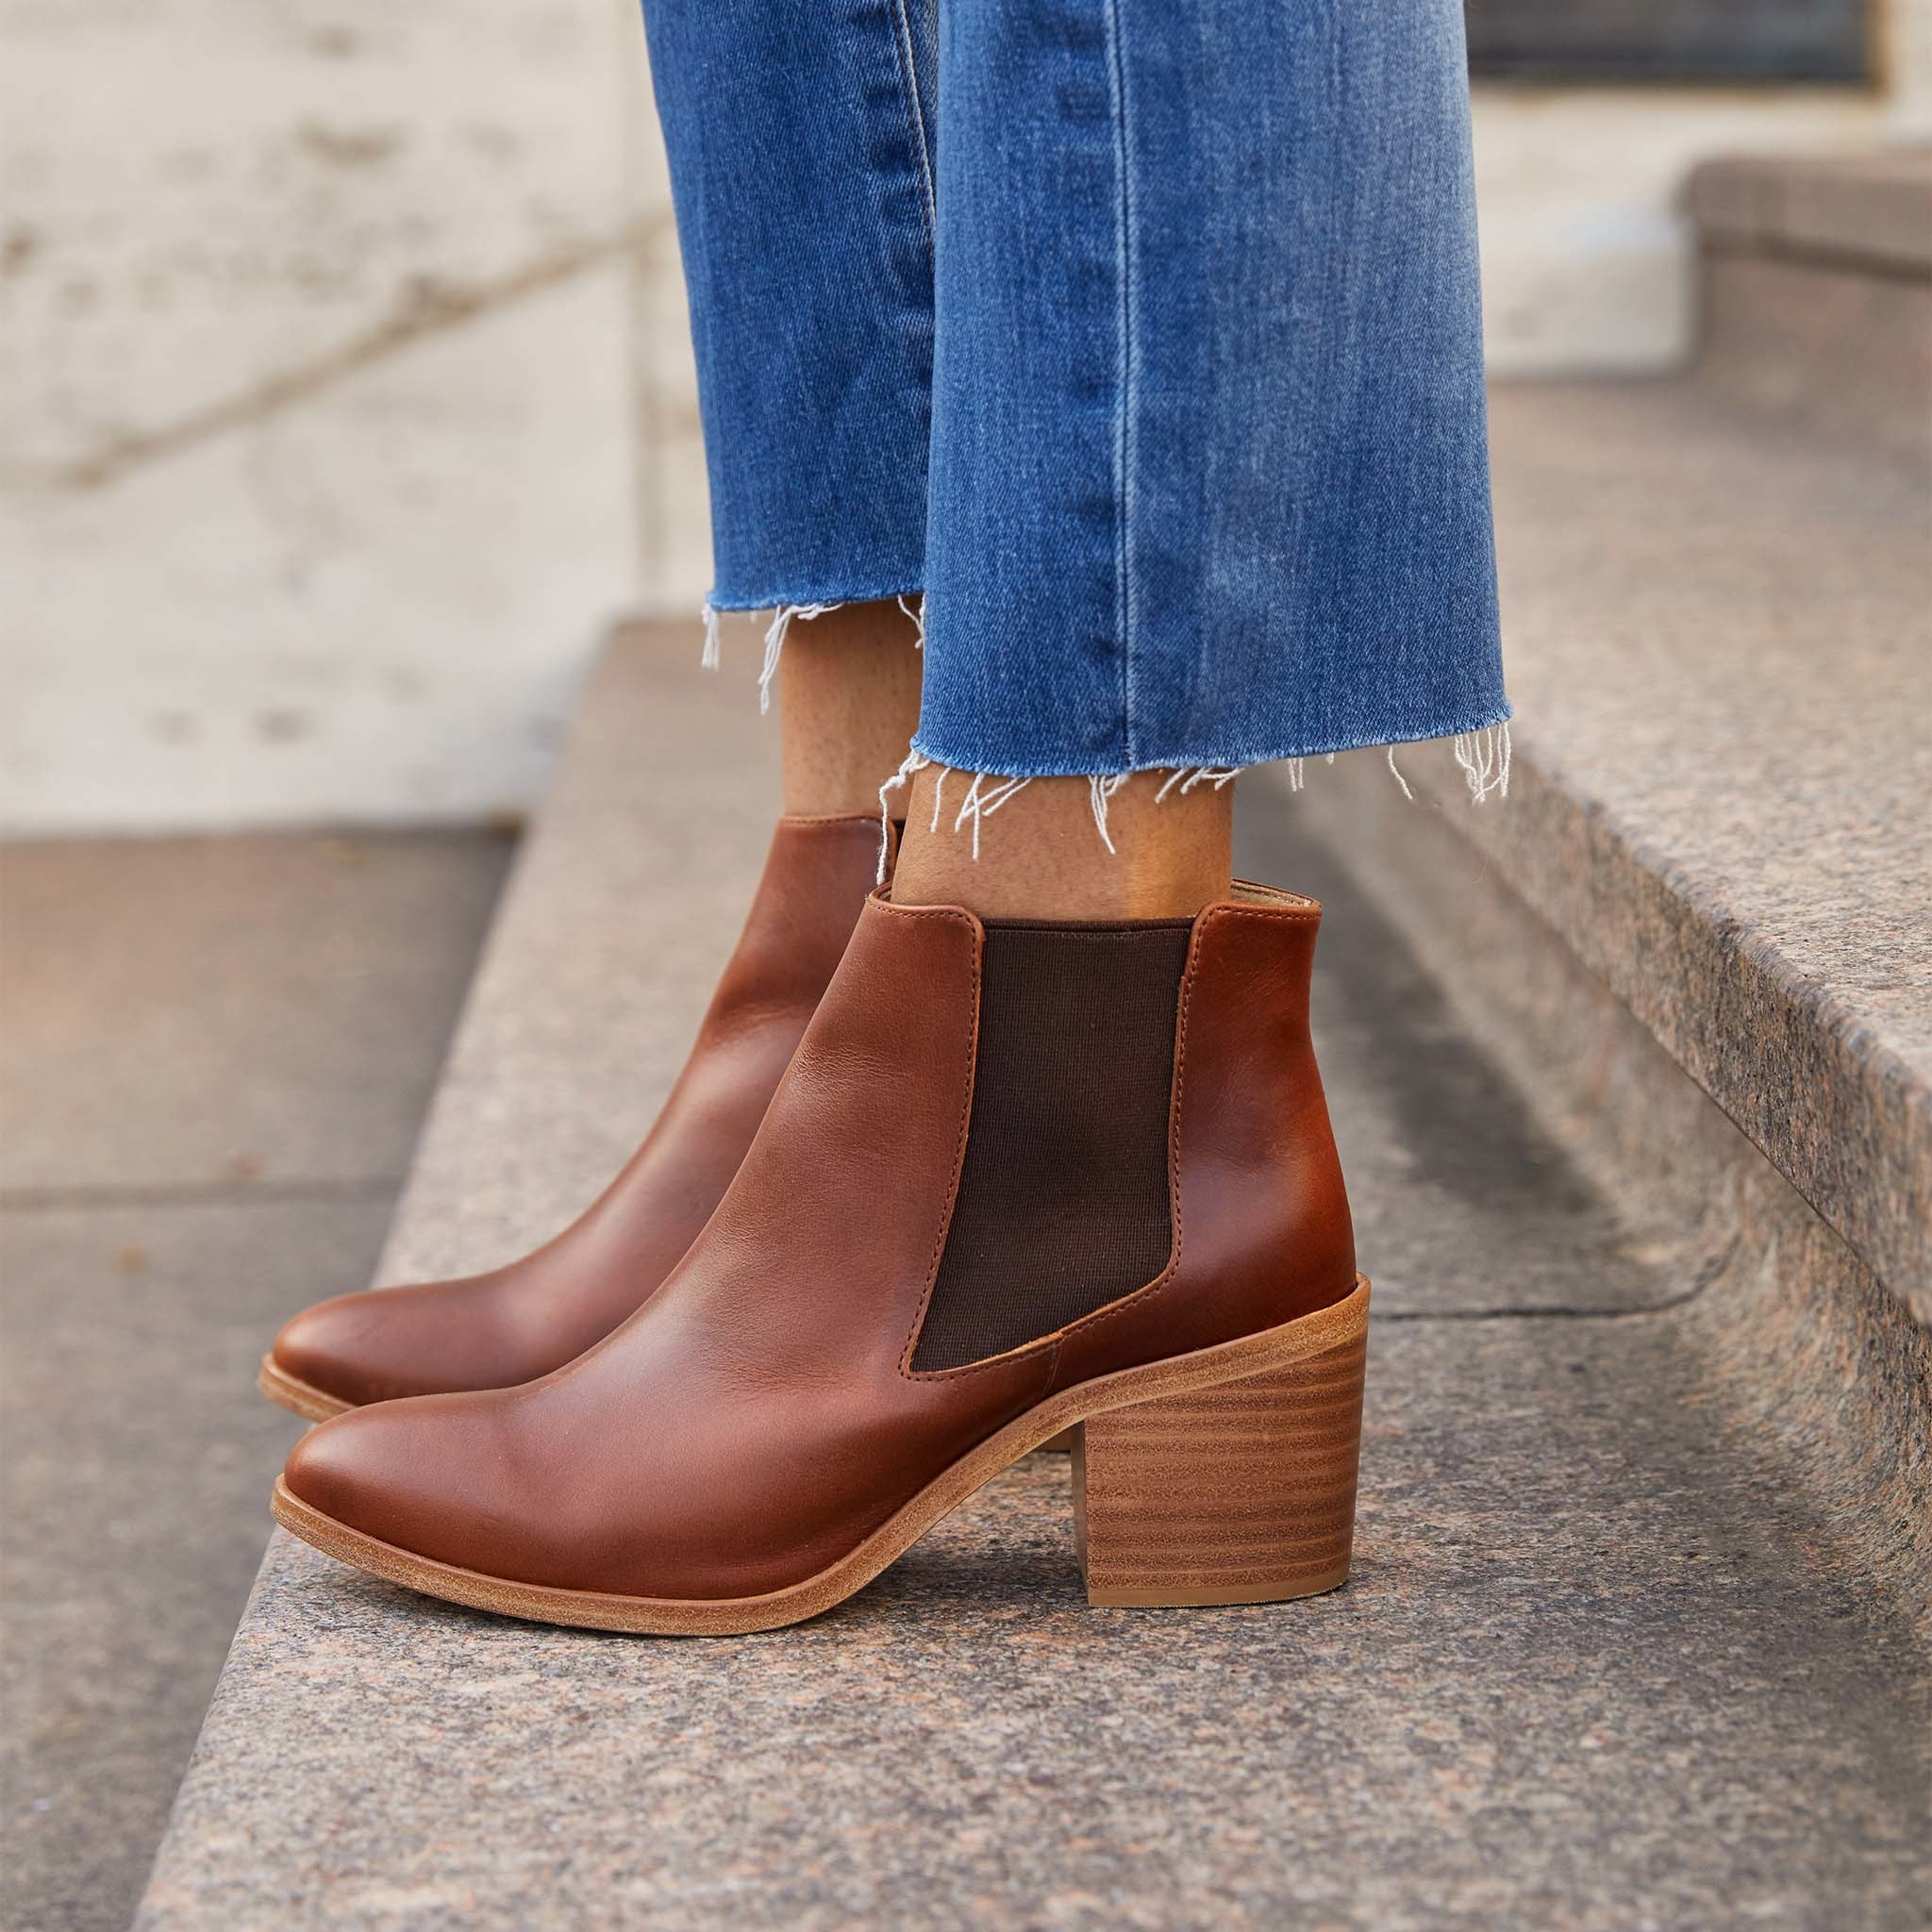 the brandy colored boots with a mid heel